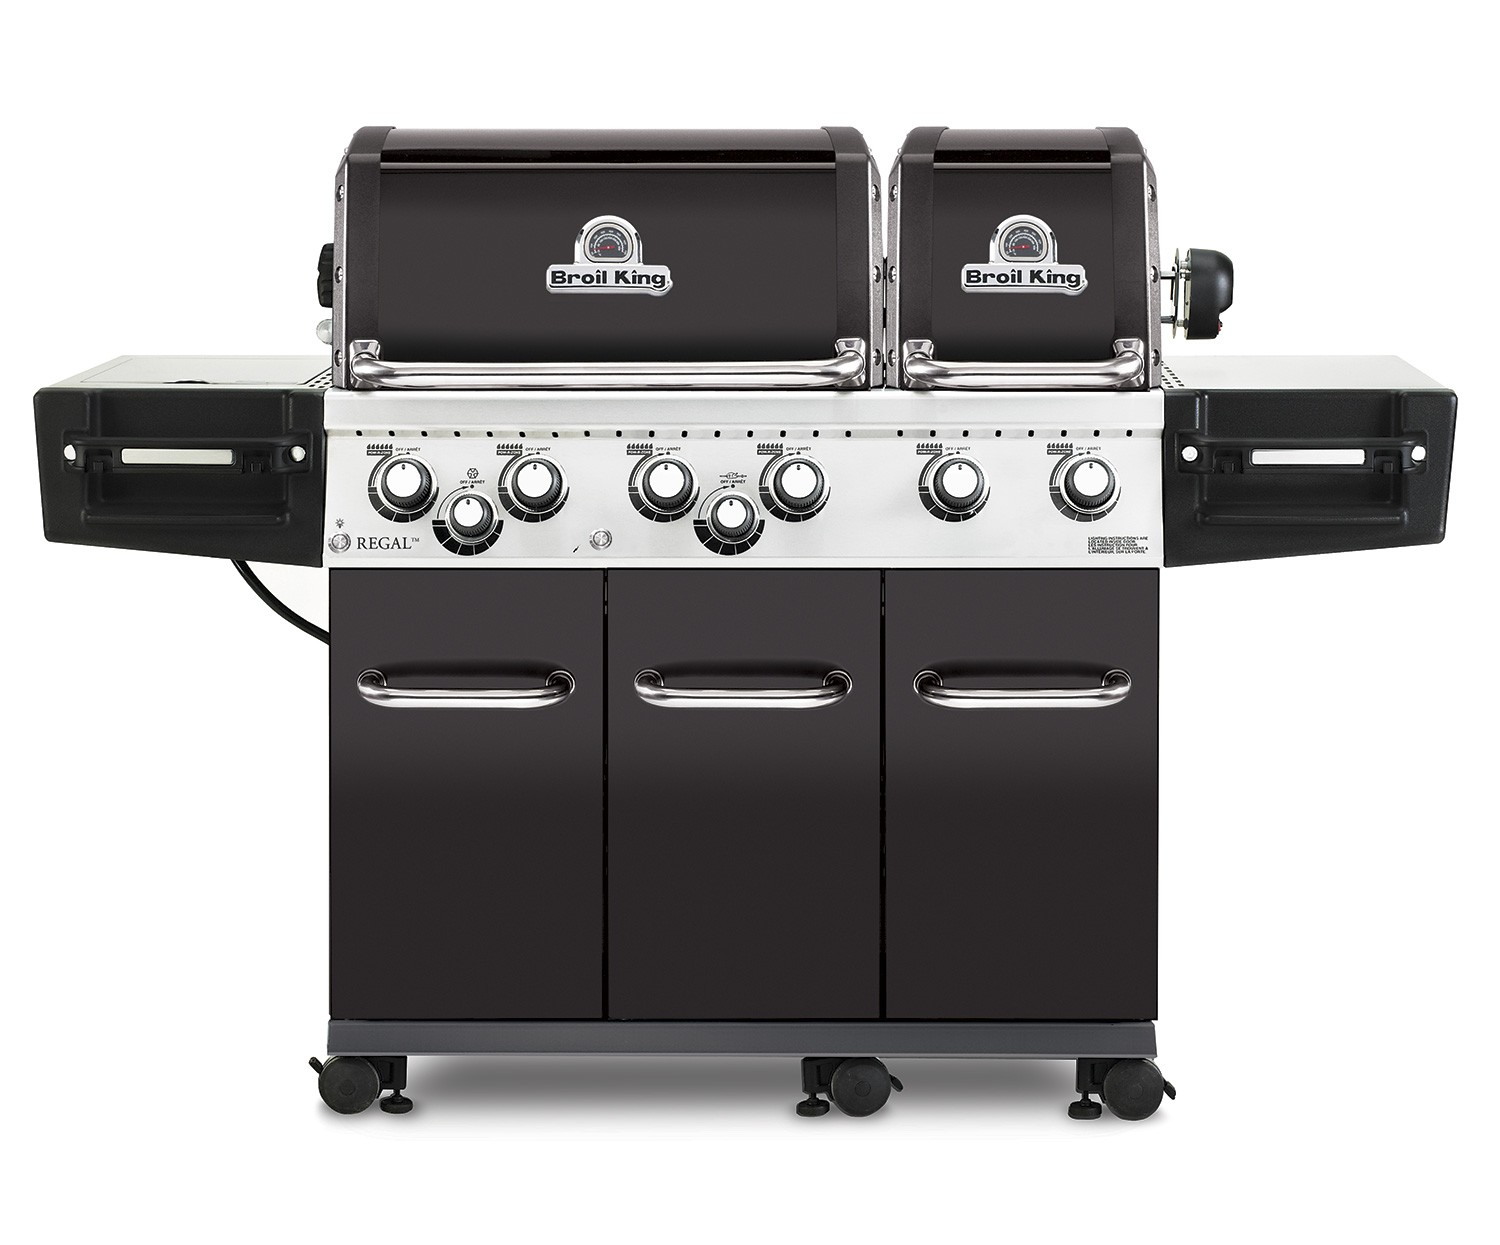 Spareribs Gasgrill Broil King : Broil king regal xl inkl drehspieß motor